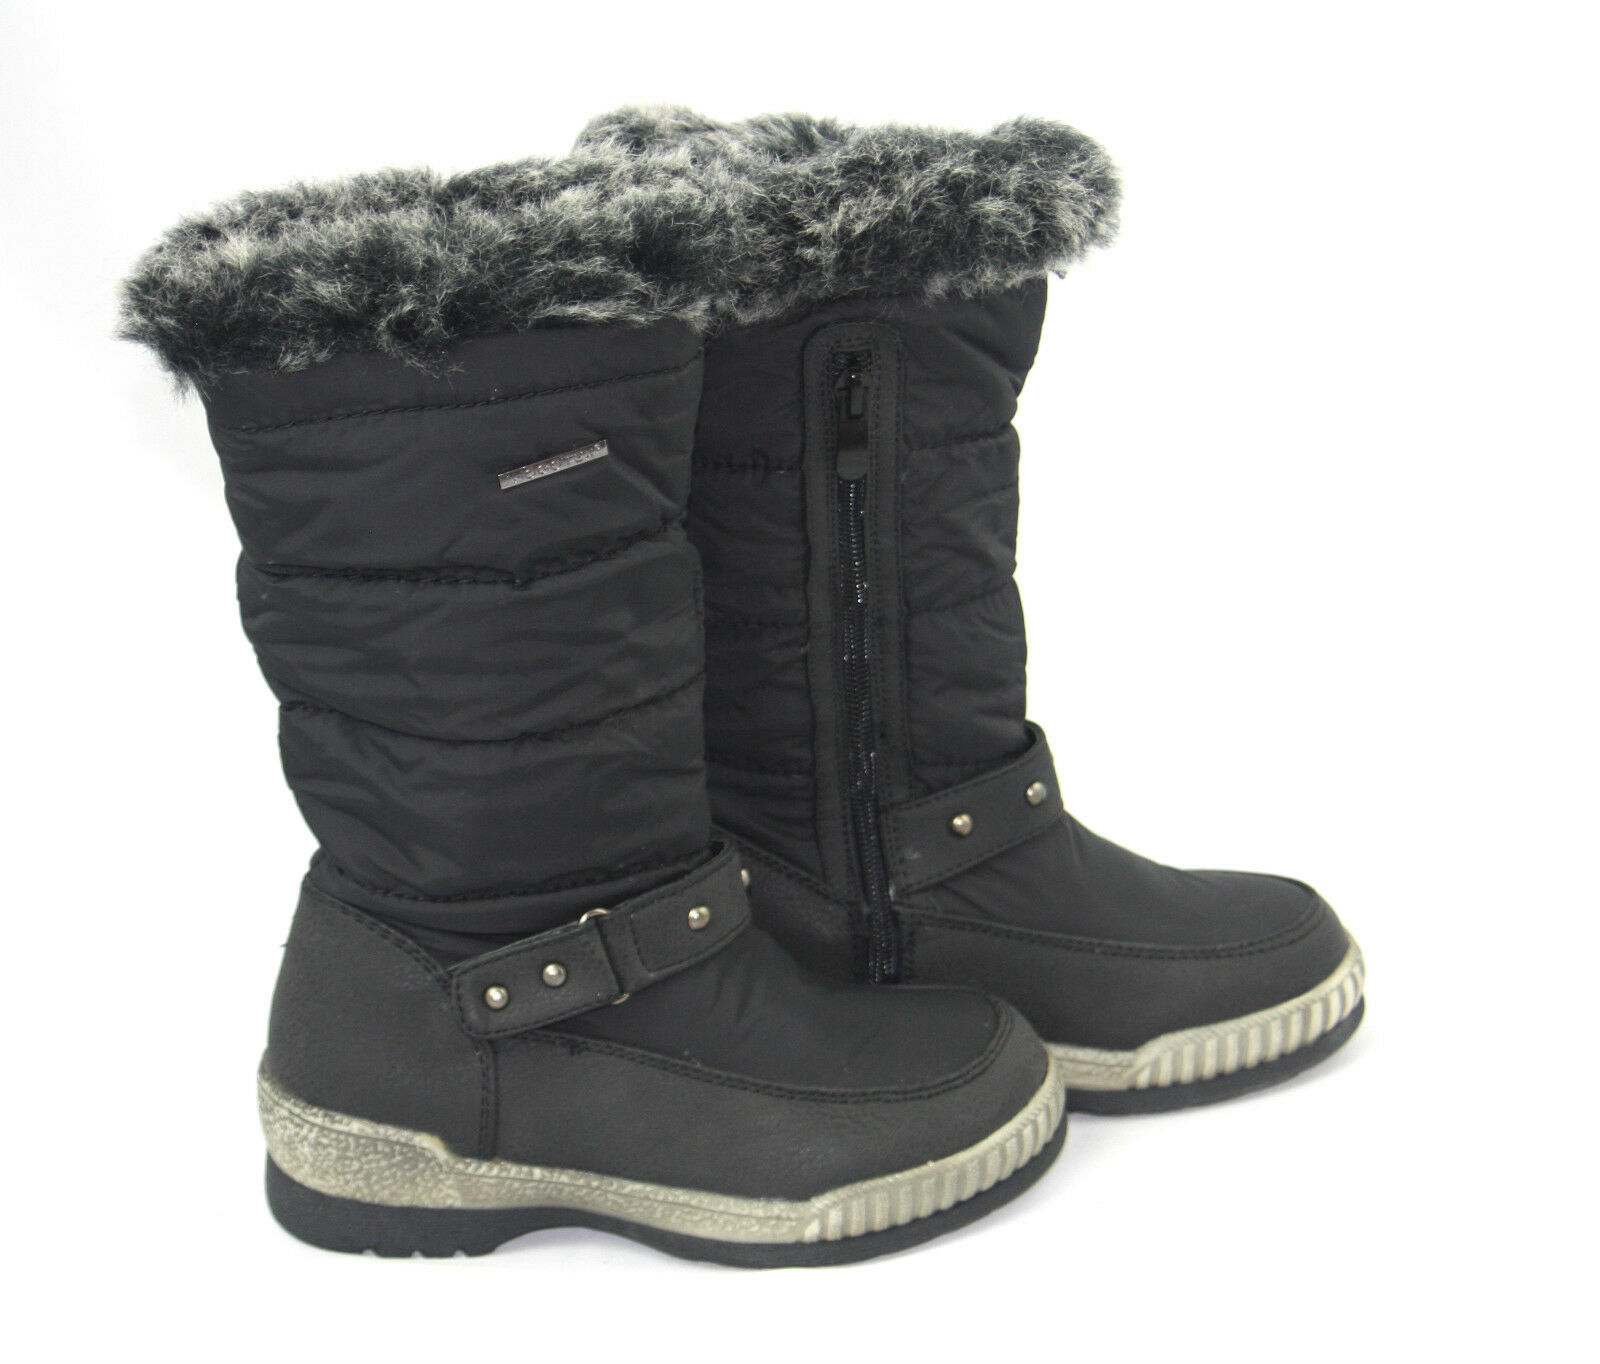 GIRLS KIDS WOMEN WARM FUR LINED WINTER QUILTED WATERPROOF SNOW BOOTS SHOES SIZE